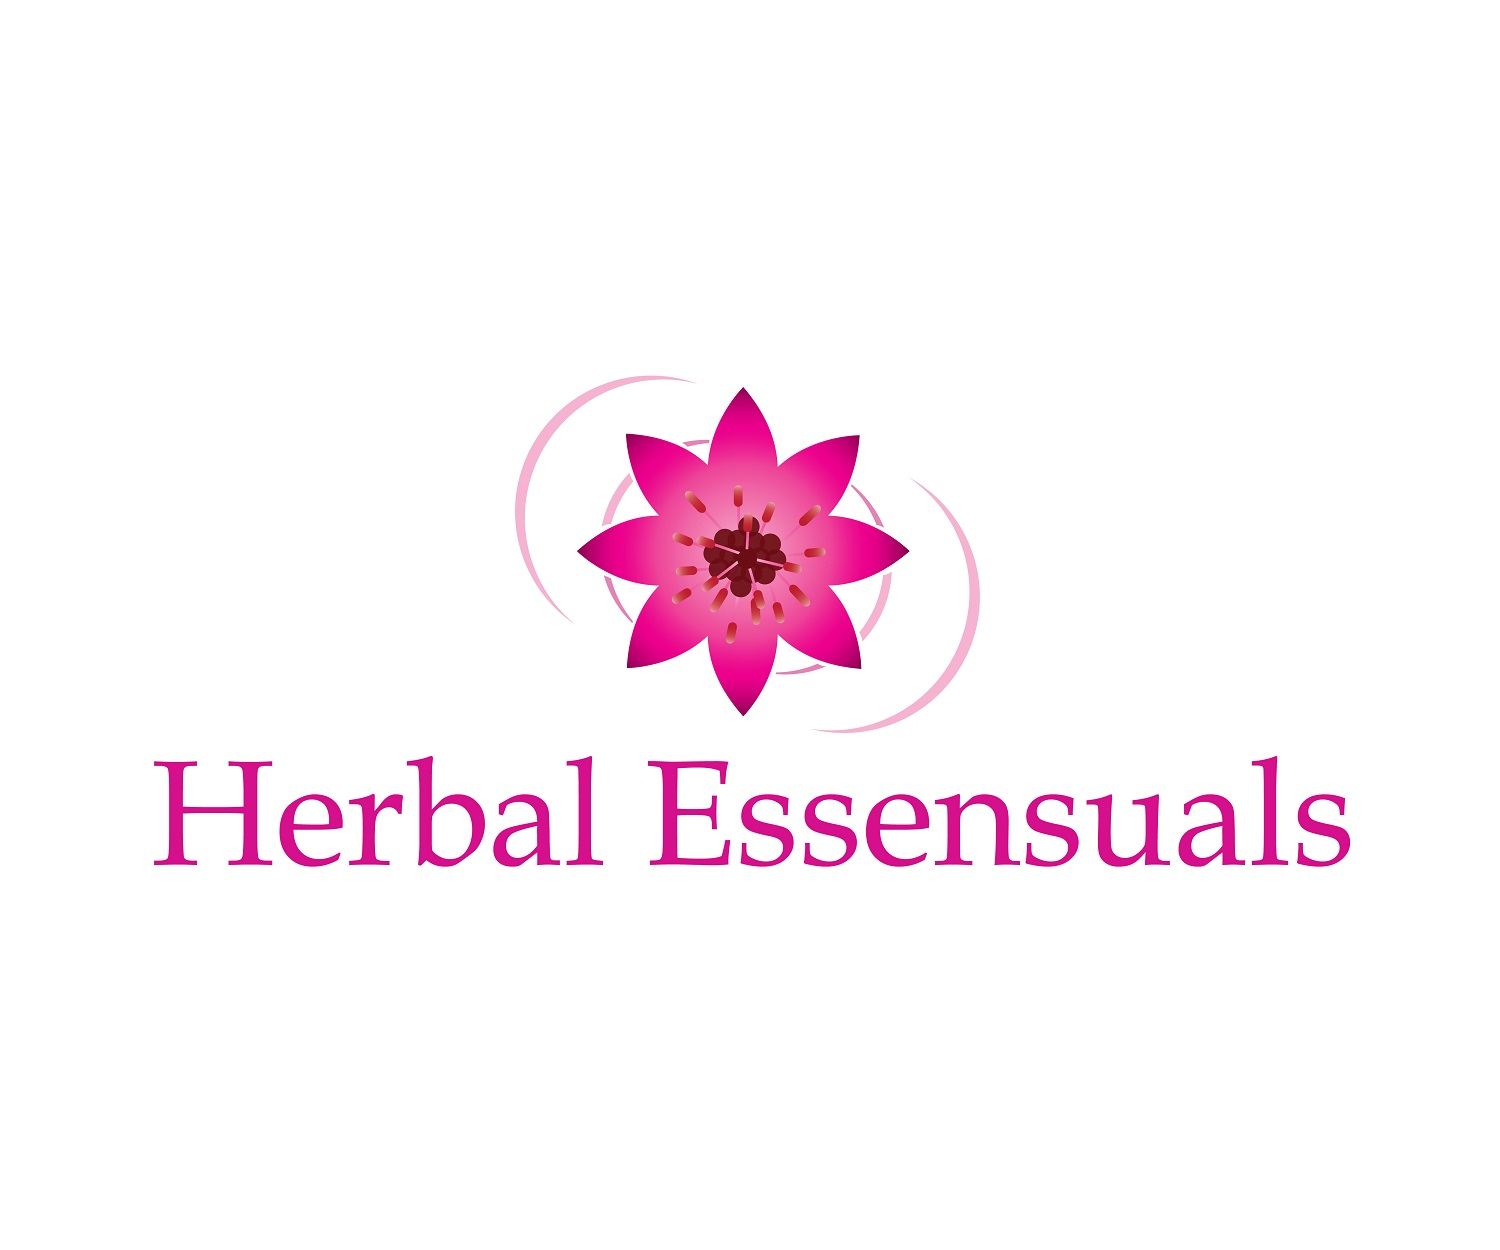 Logo Design by jhunzkie24 - Entry No. 53 in the Logo Design Contest Captivating Logo Design for Herbal Essensuals.